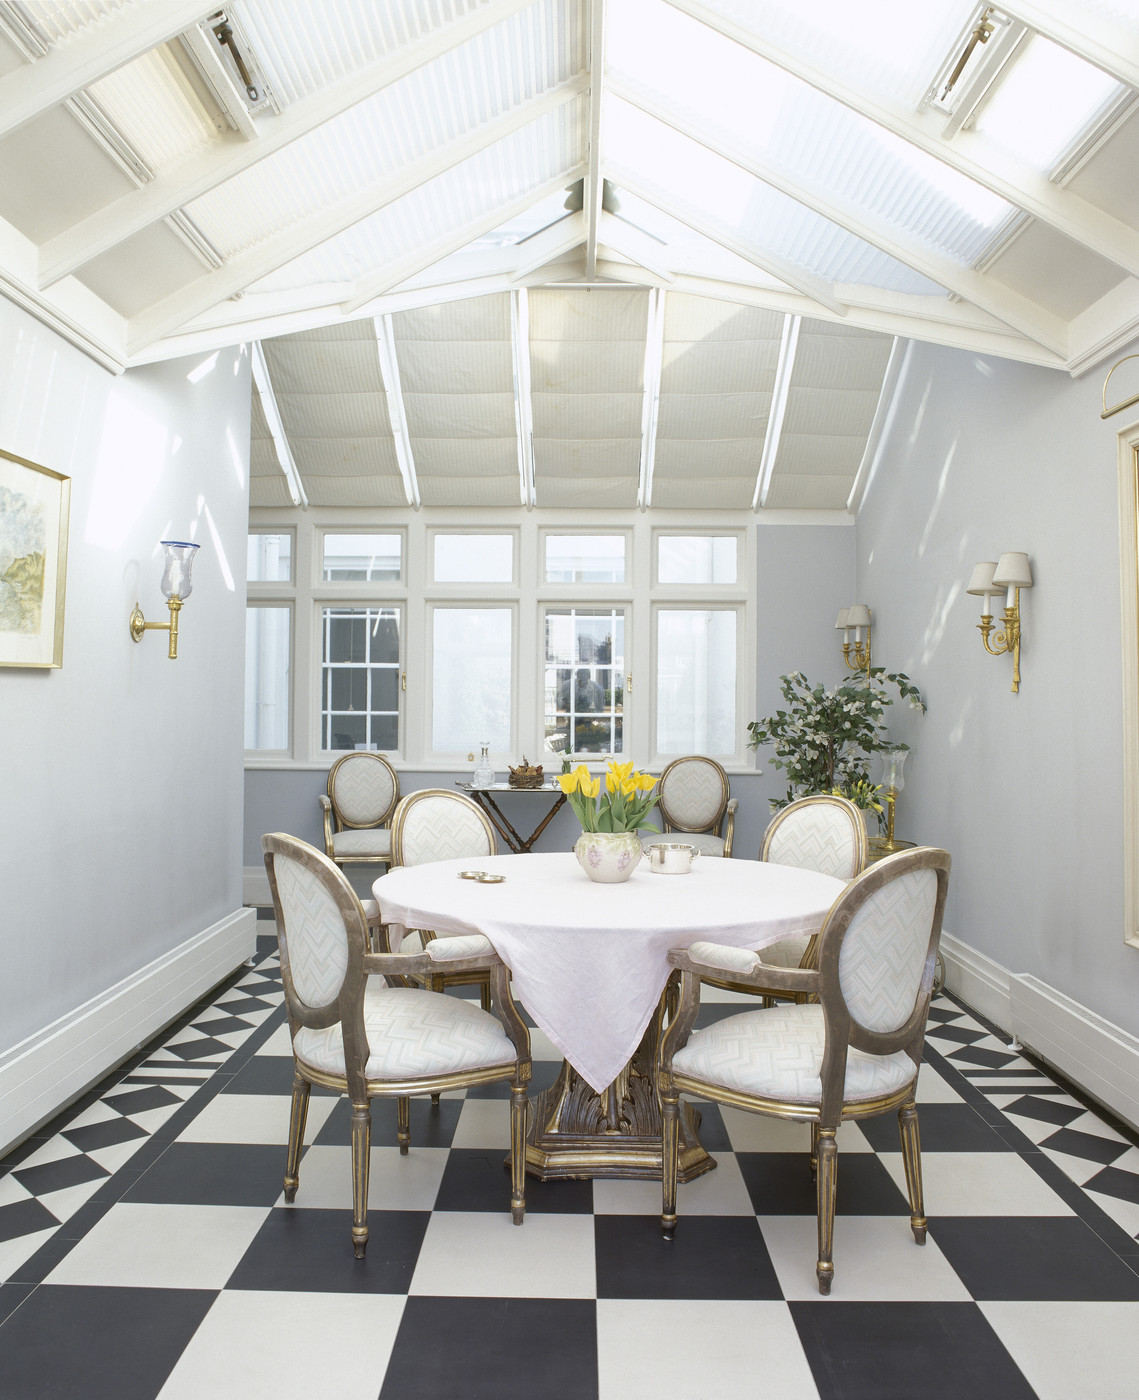 White round tablecloth in a checkered dining room